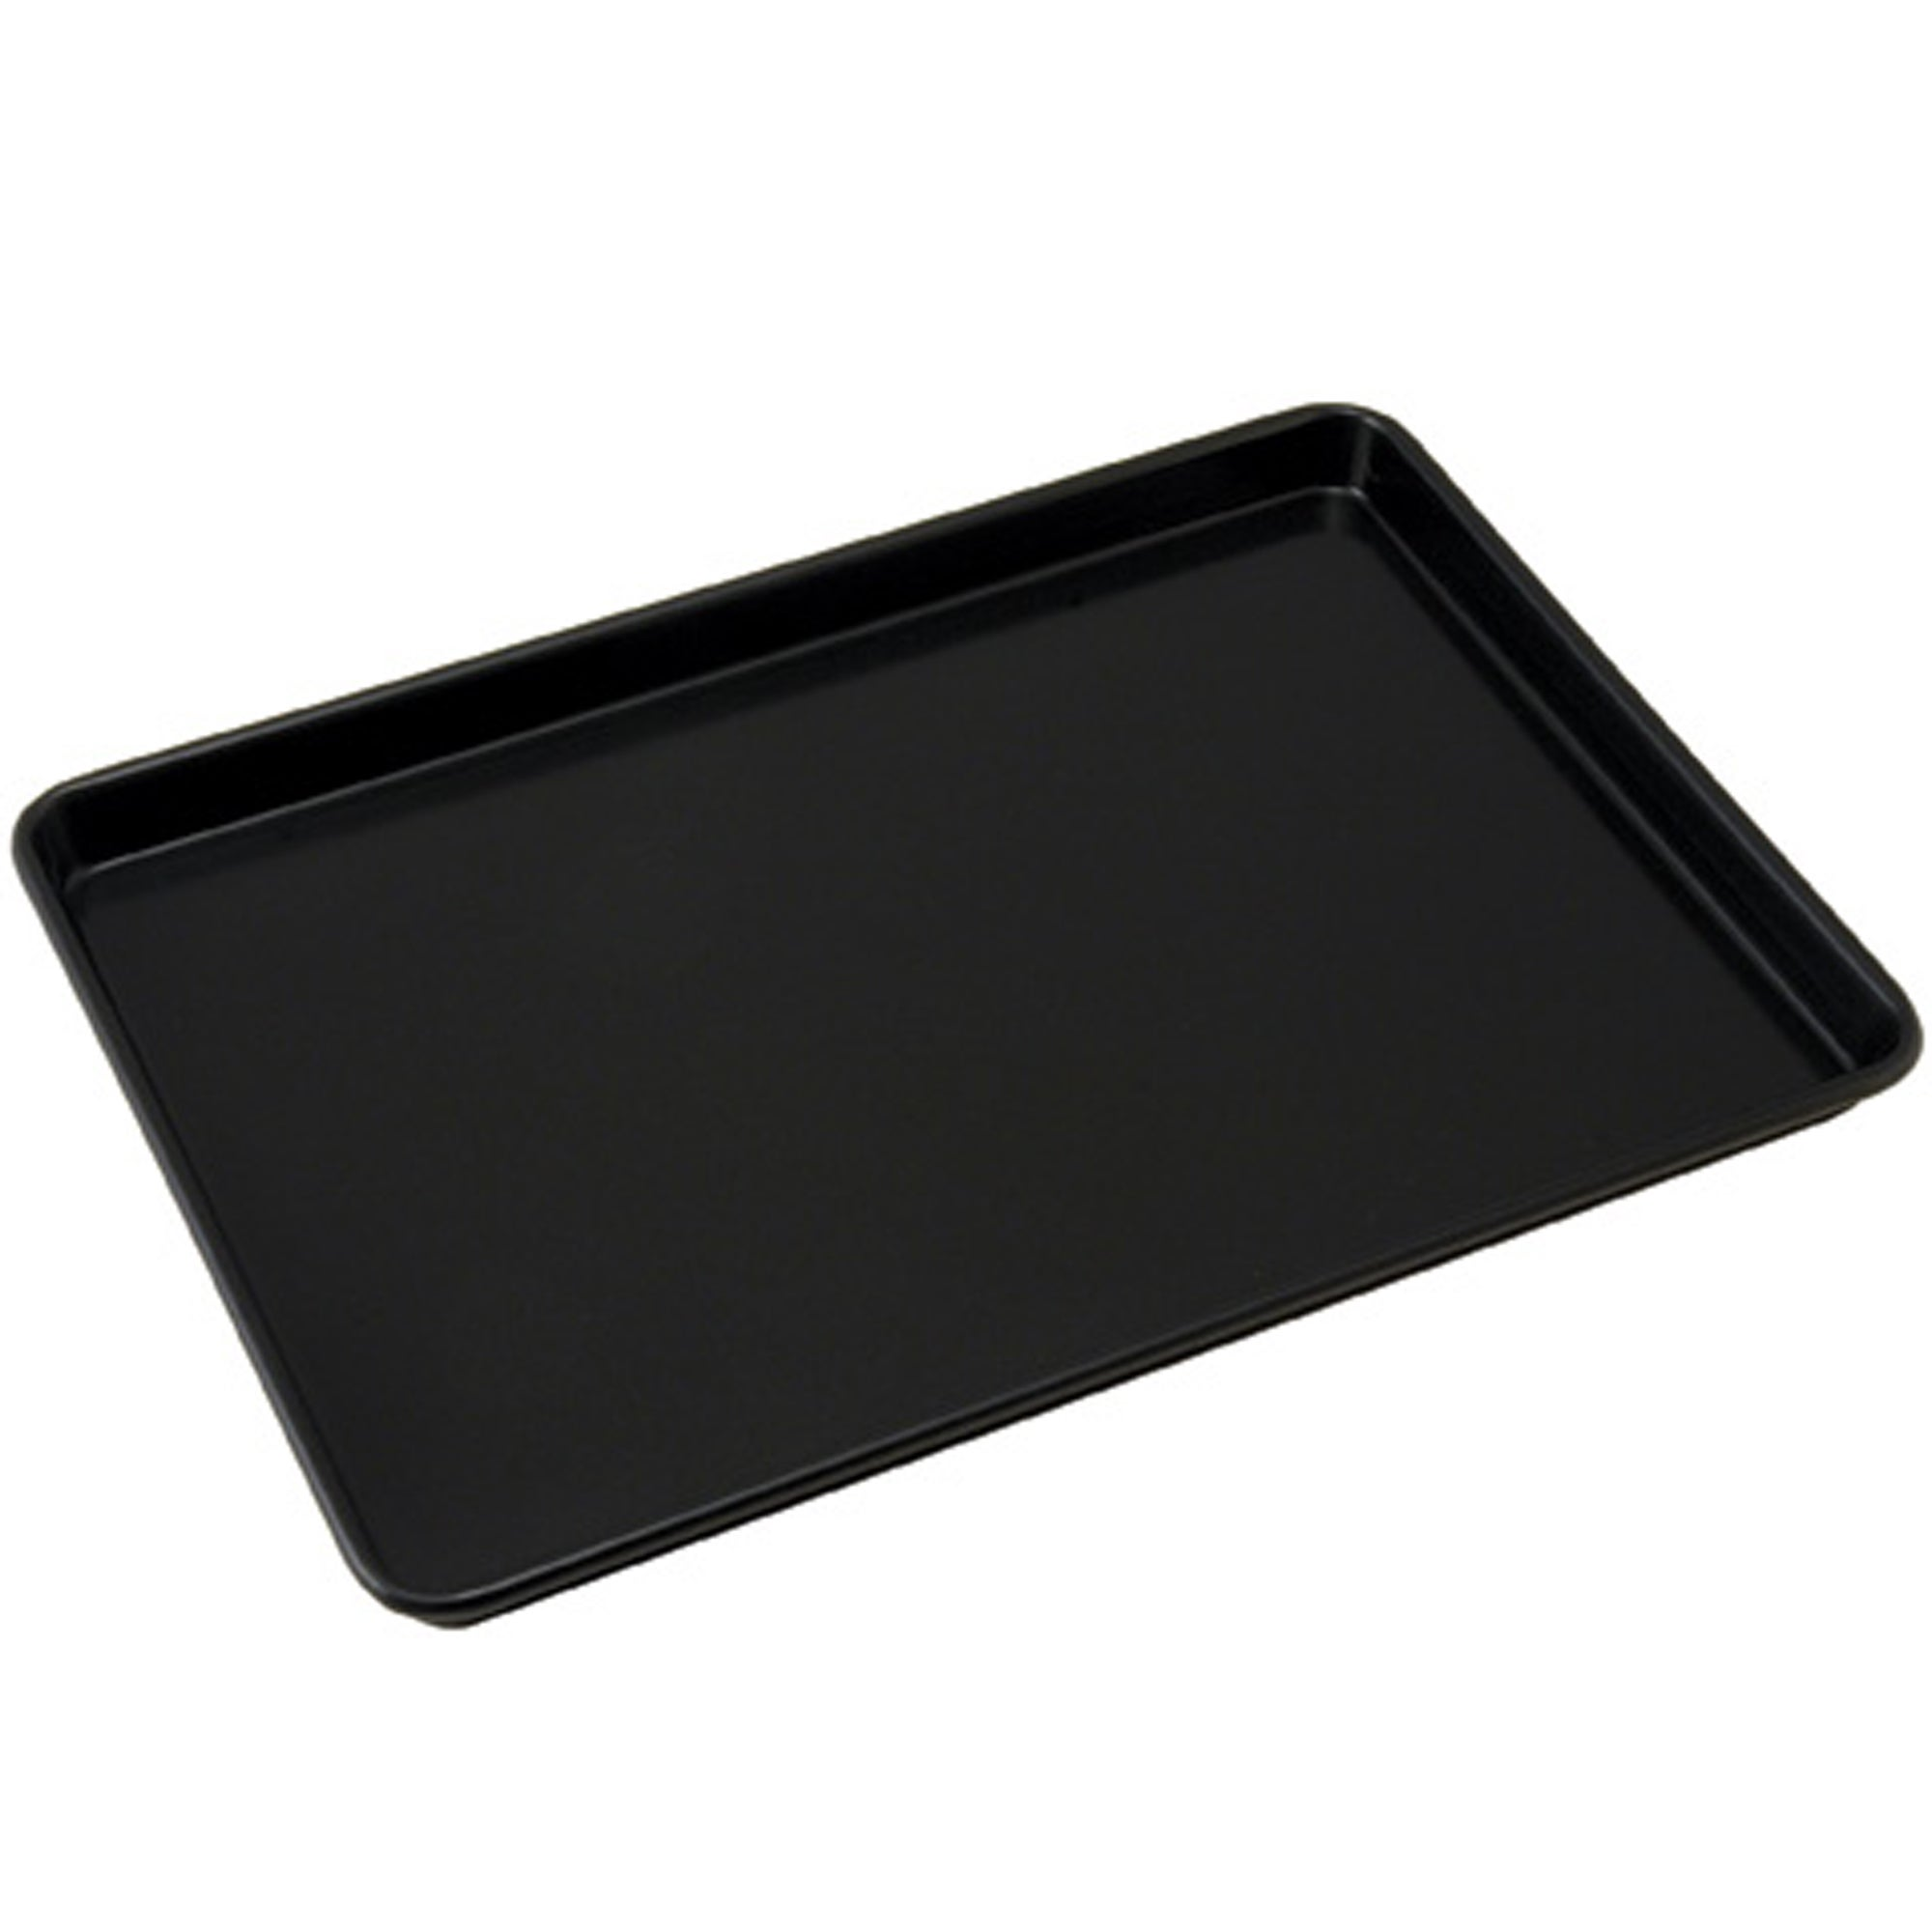 Tala Collection Non Stick Baking Tray